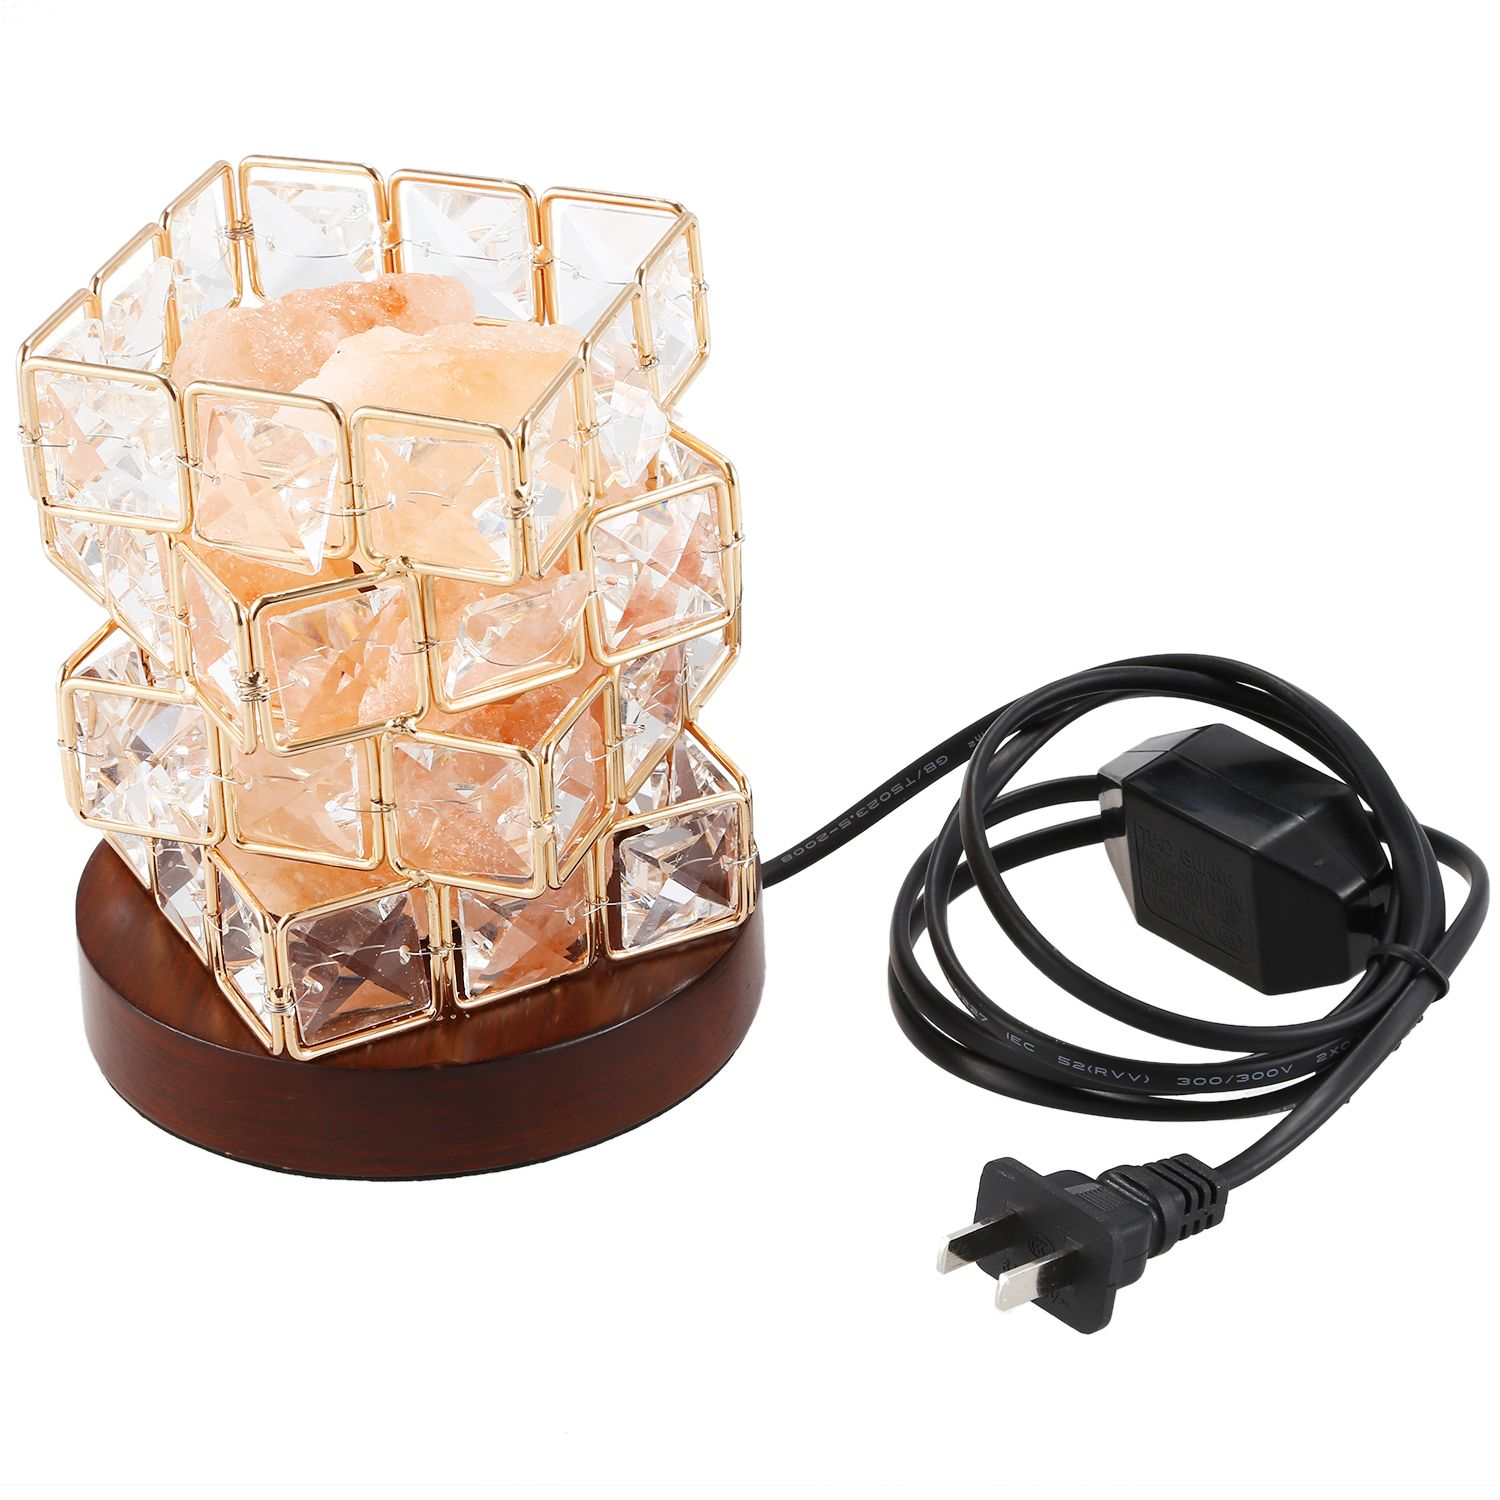 Himalayan Salt Lamp,natural Hymalain Salt Rock In Crystal Basket With Dimmer Switch,ul-listed Cord &wood Base Us Plug Night Lights